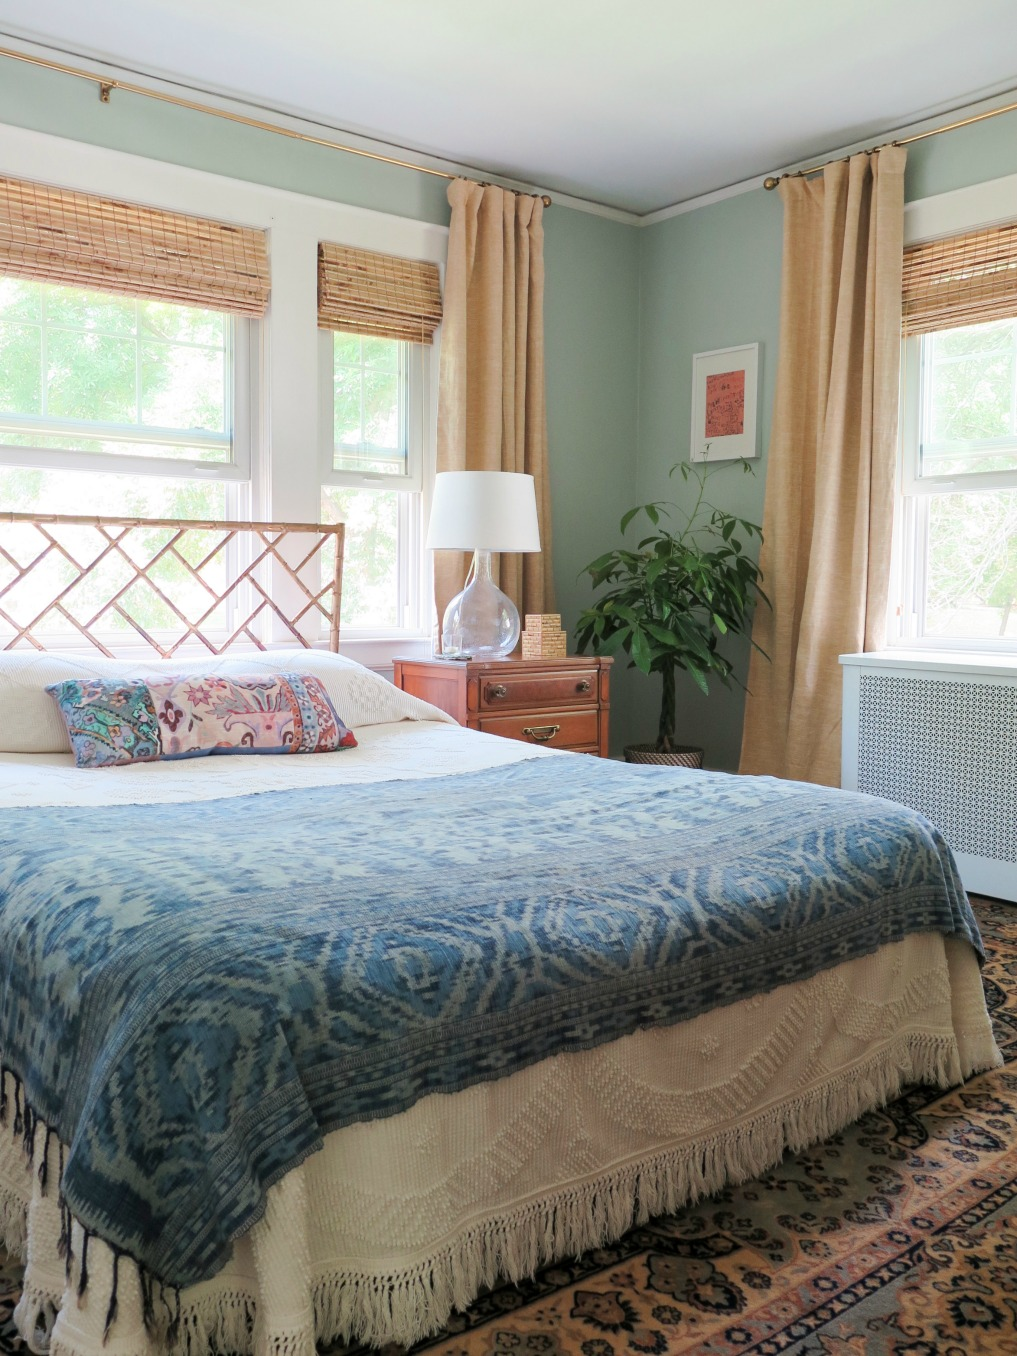 Vintage blue textile adds color to a white bedspread